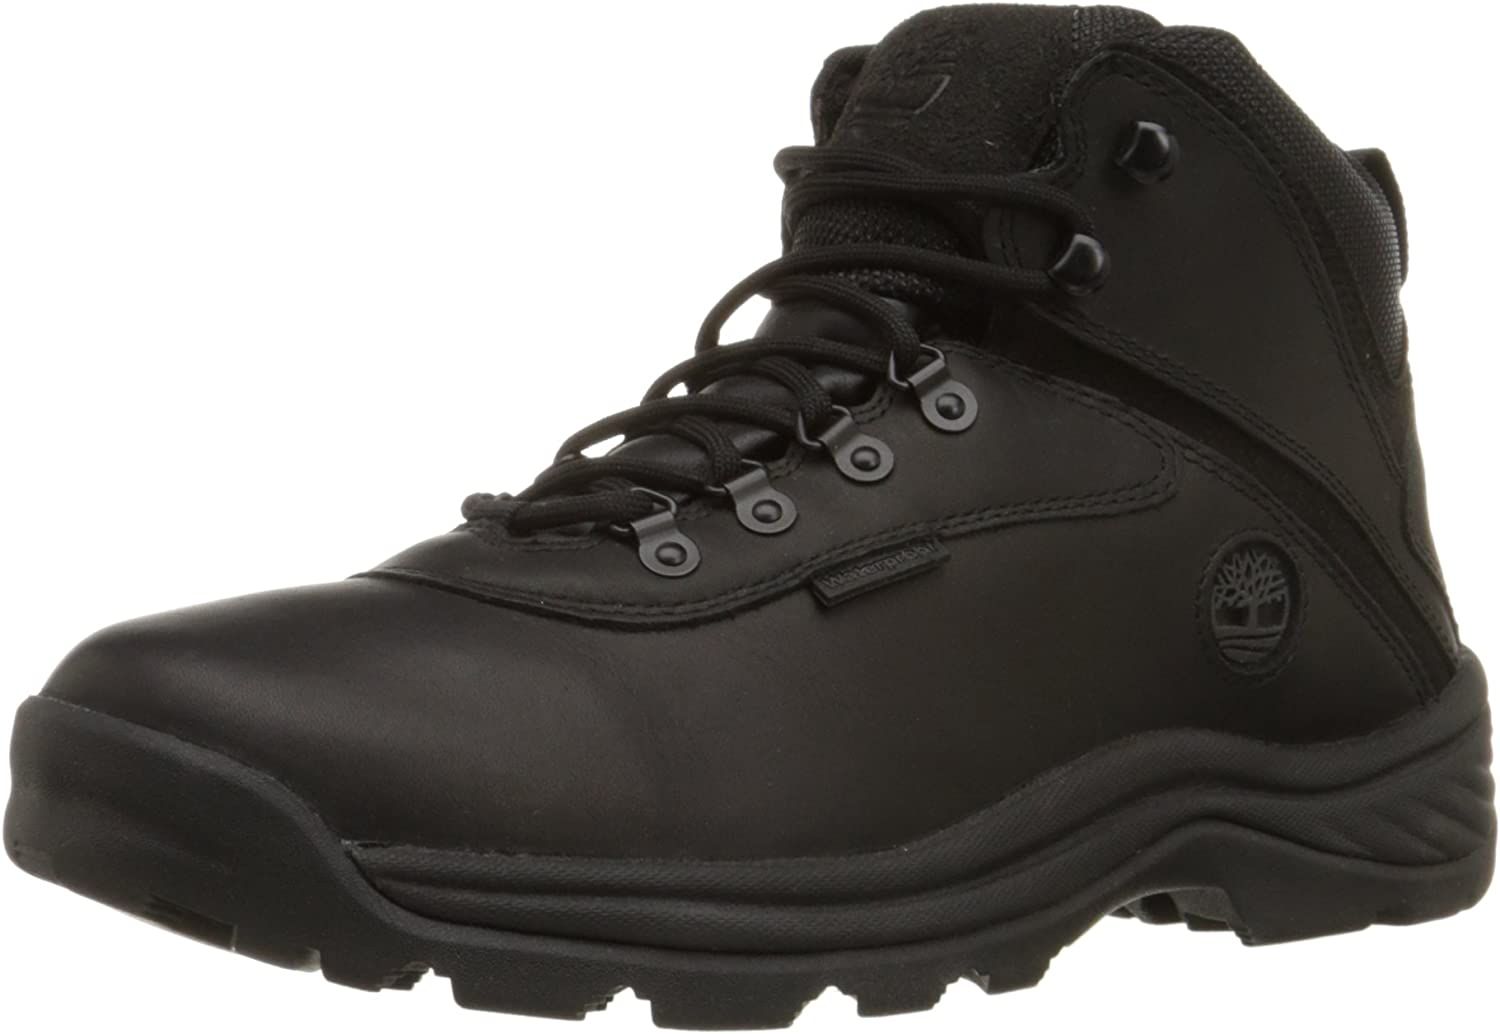 Timberland Men s White Ledge Mid Waterproof Ankle Boot,Black,8.5 W US